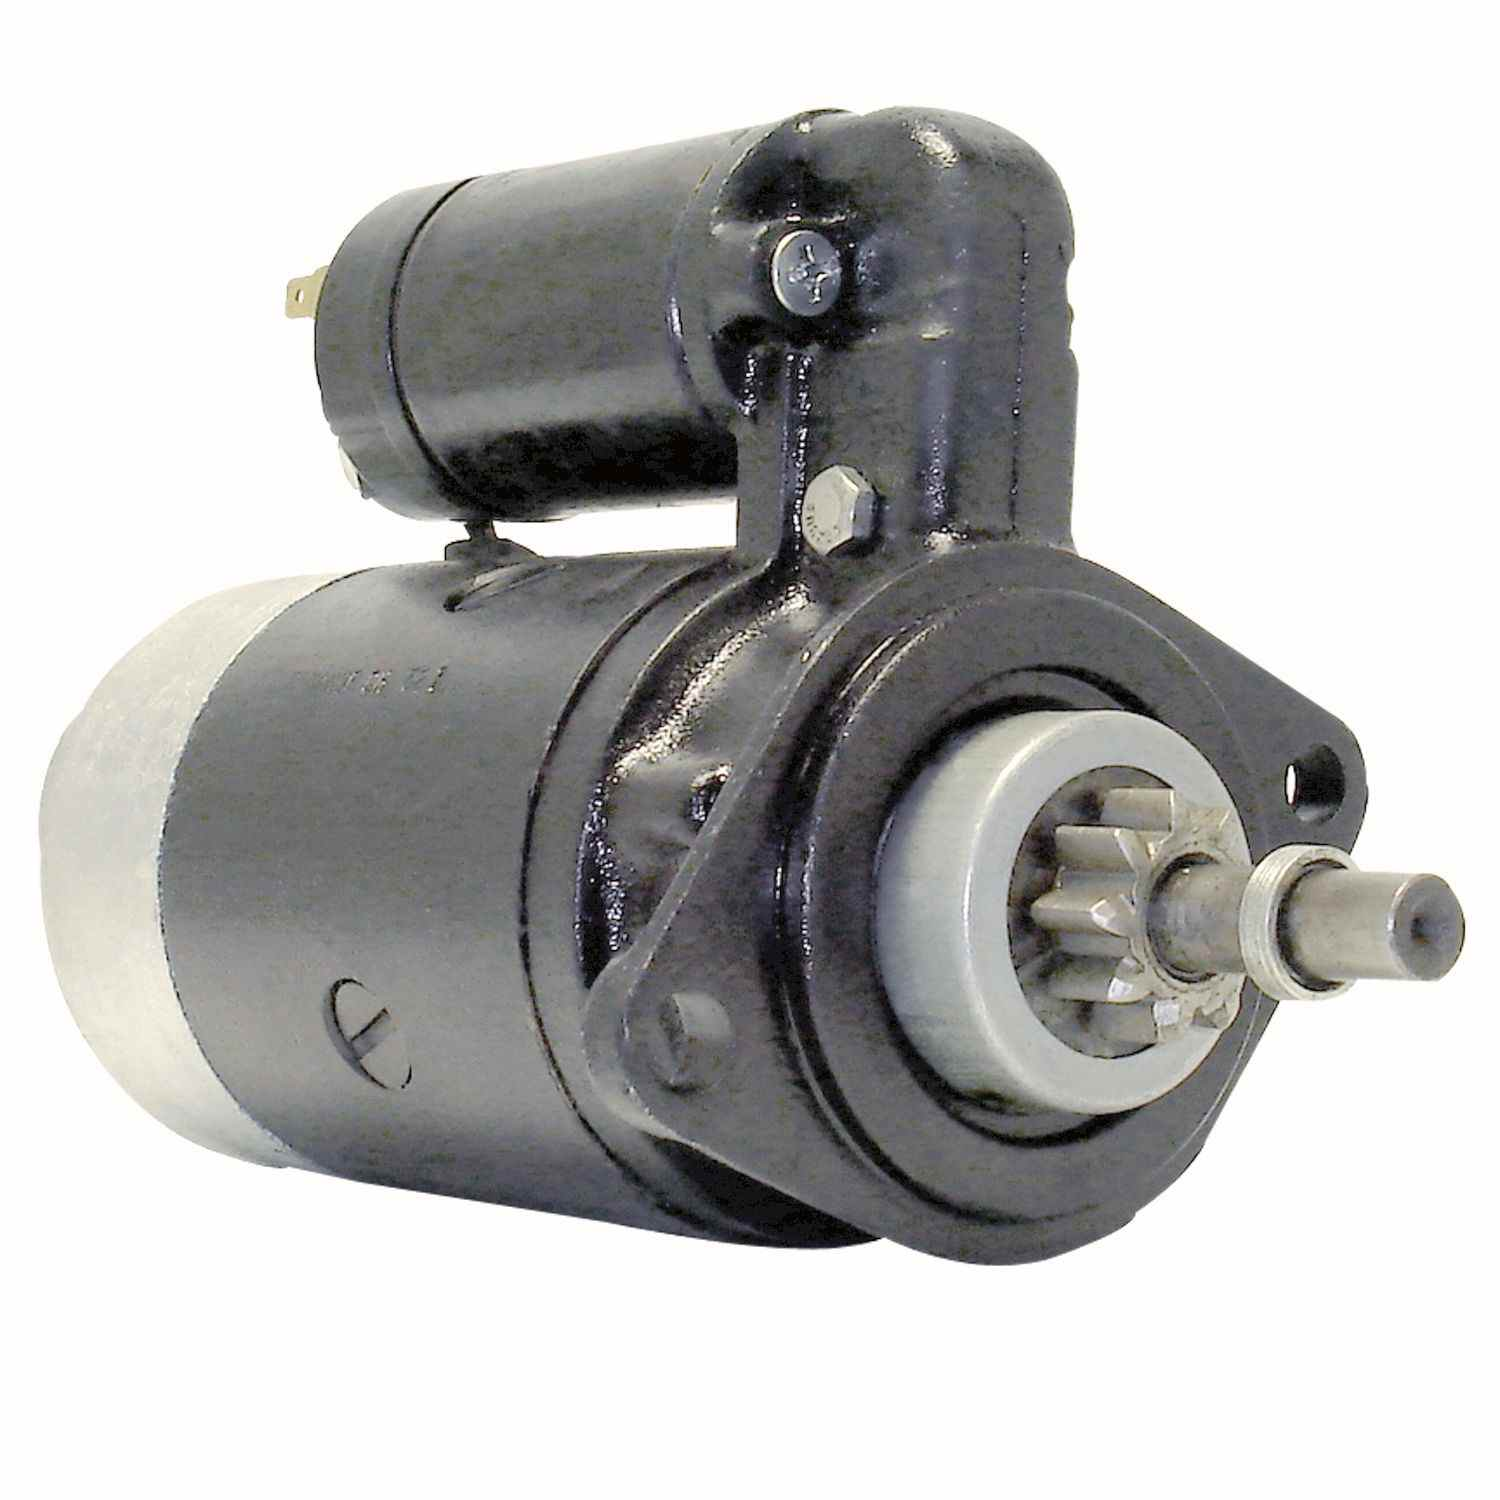 ACDELCO GOLD/PROFESSIONAL - Reman Starter Motor - DCC 336-1281